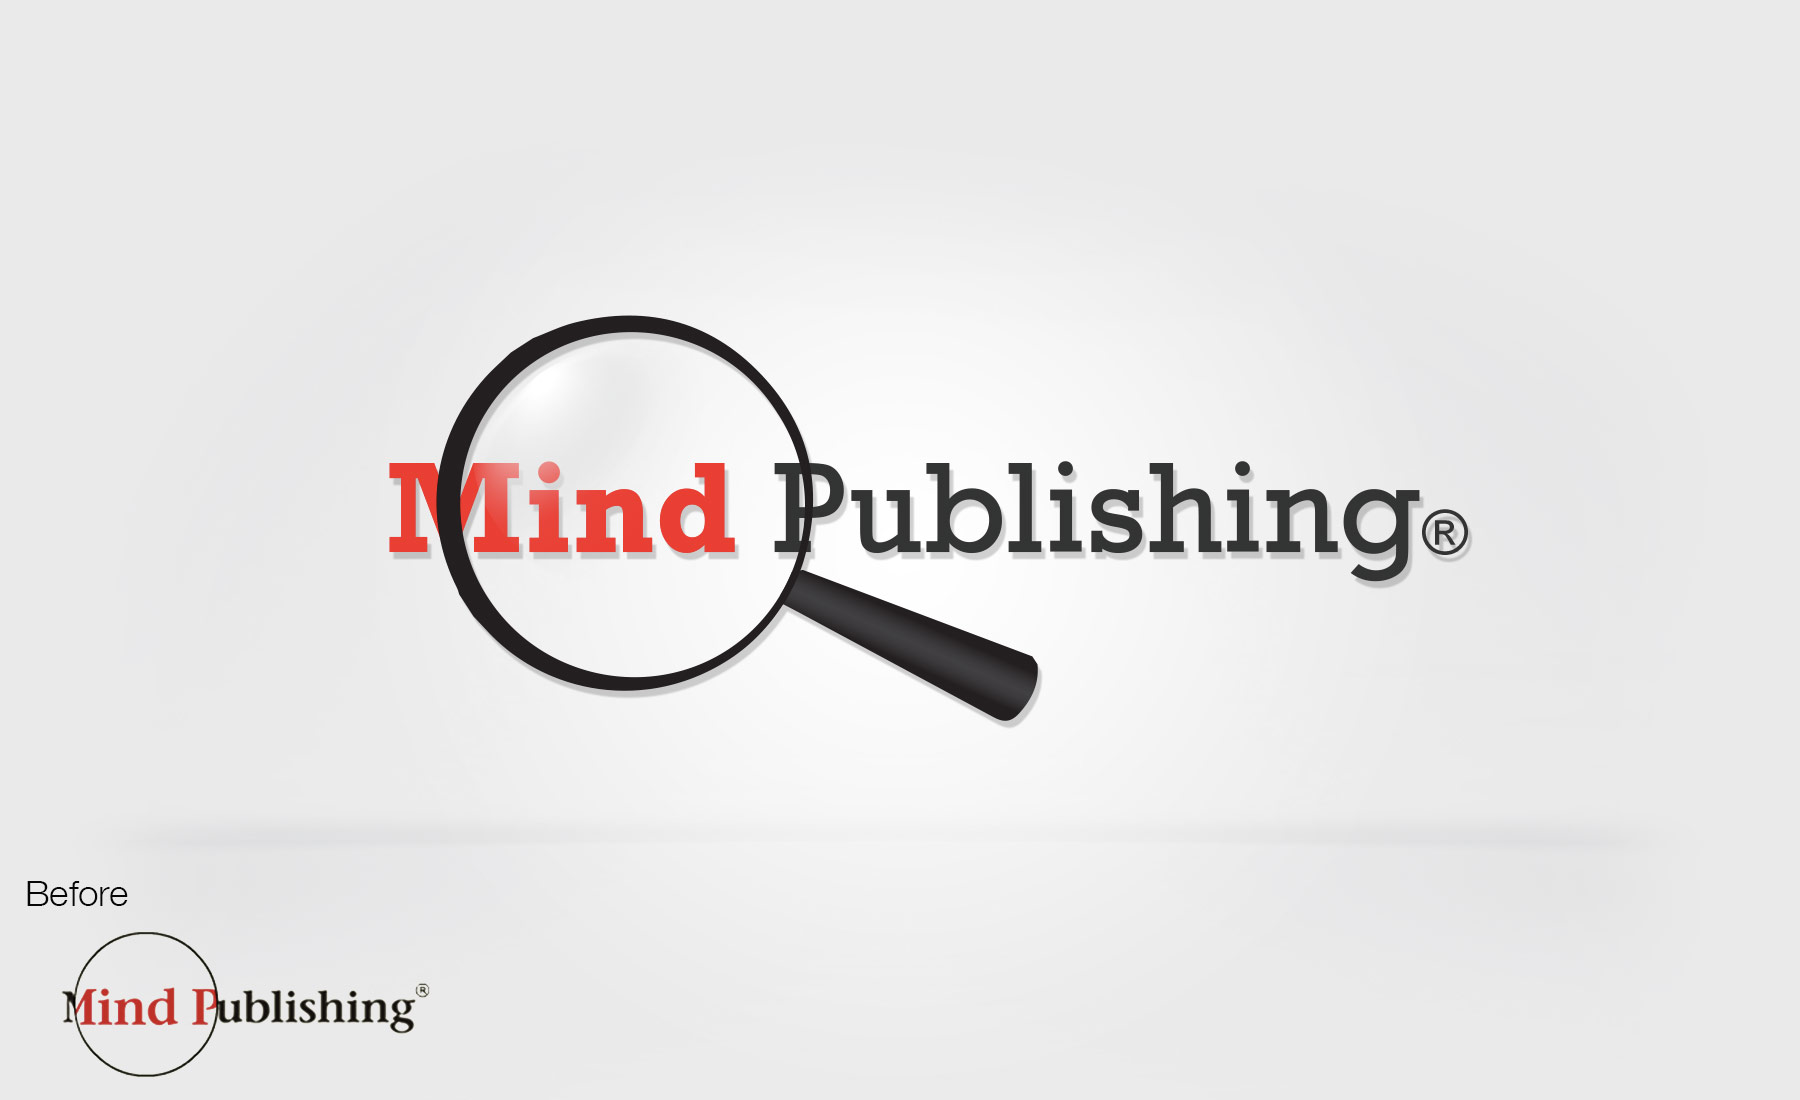 Mindpublishing